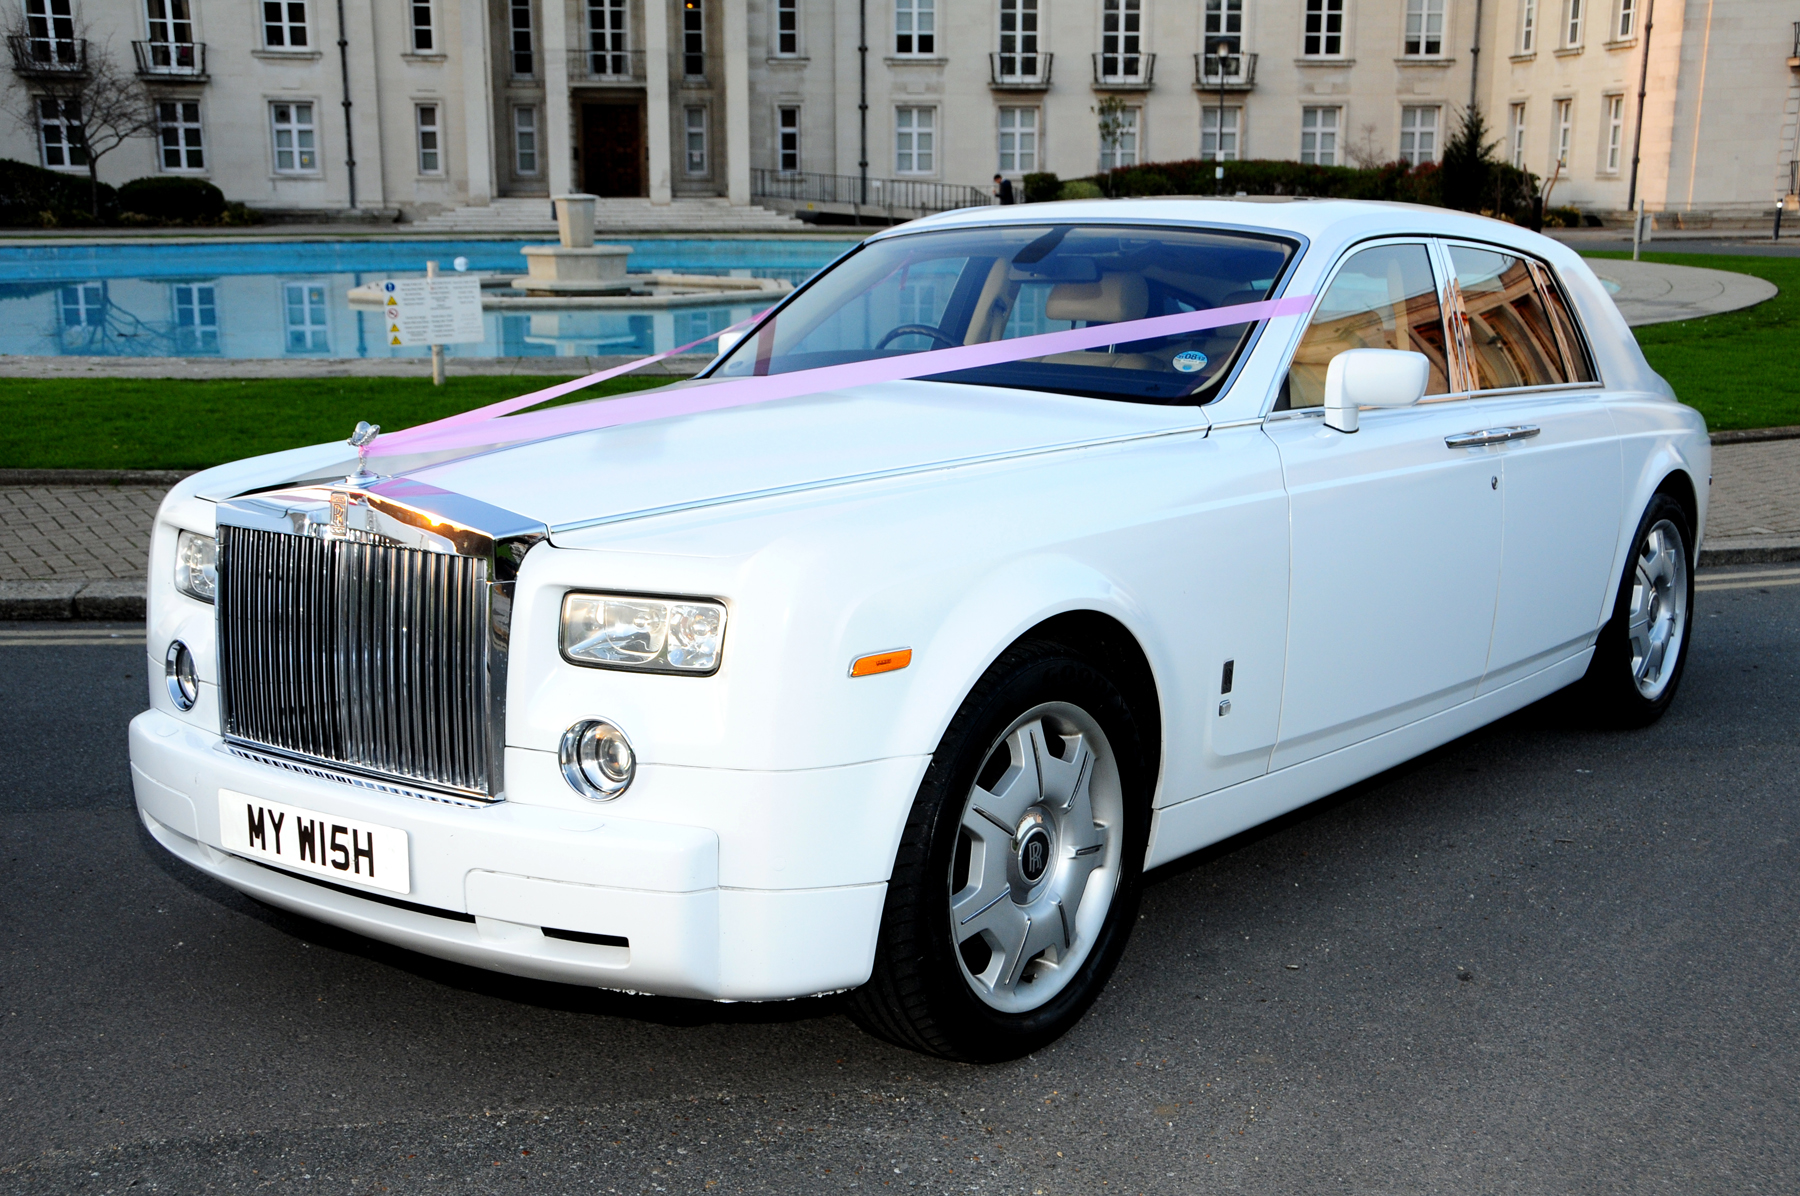 Rolls Royce Phantom Hire Rolls Wedding Car Hire Phantom Hiretaxi Company Reading Airport Transfers Reading